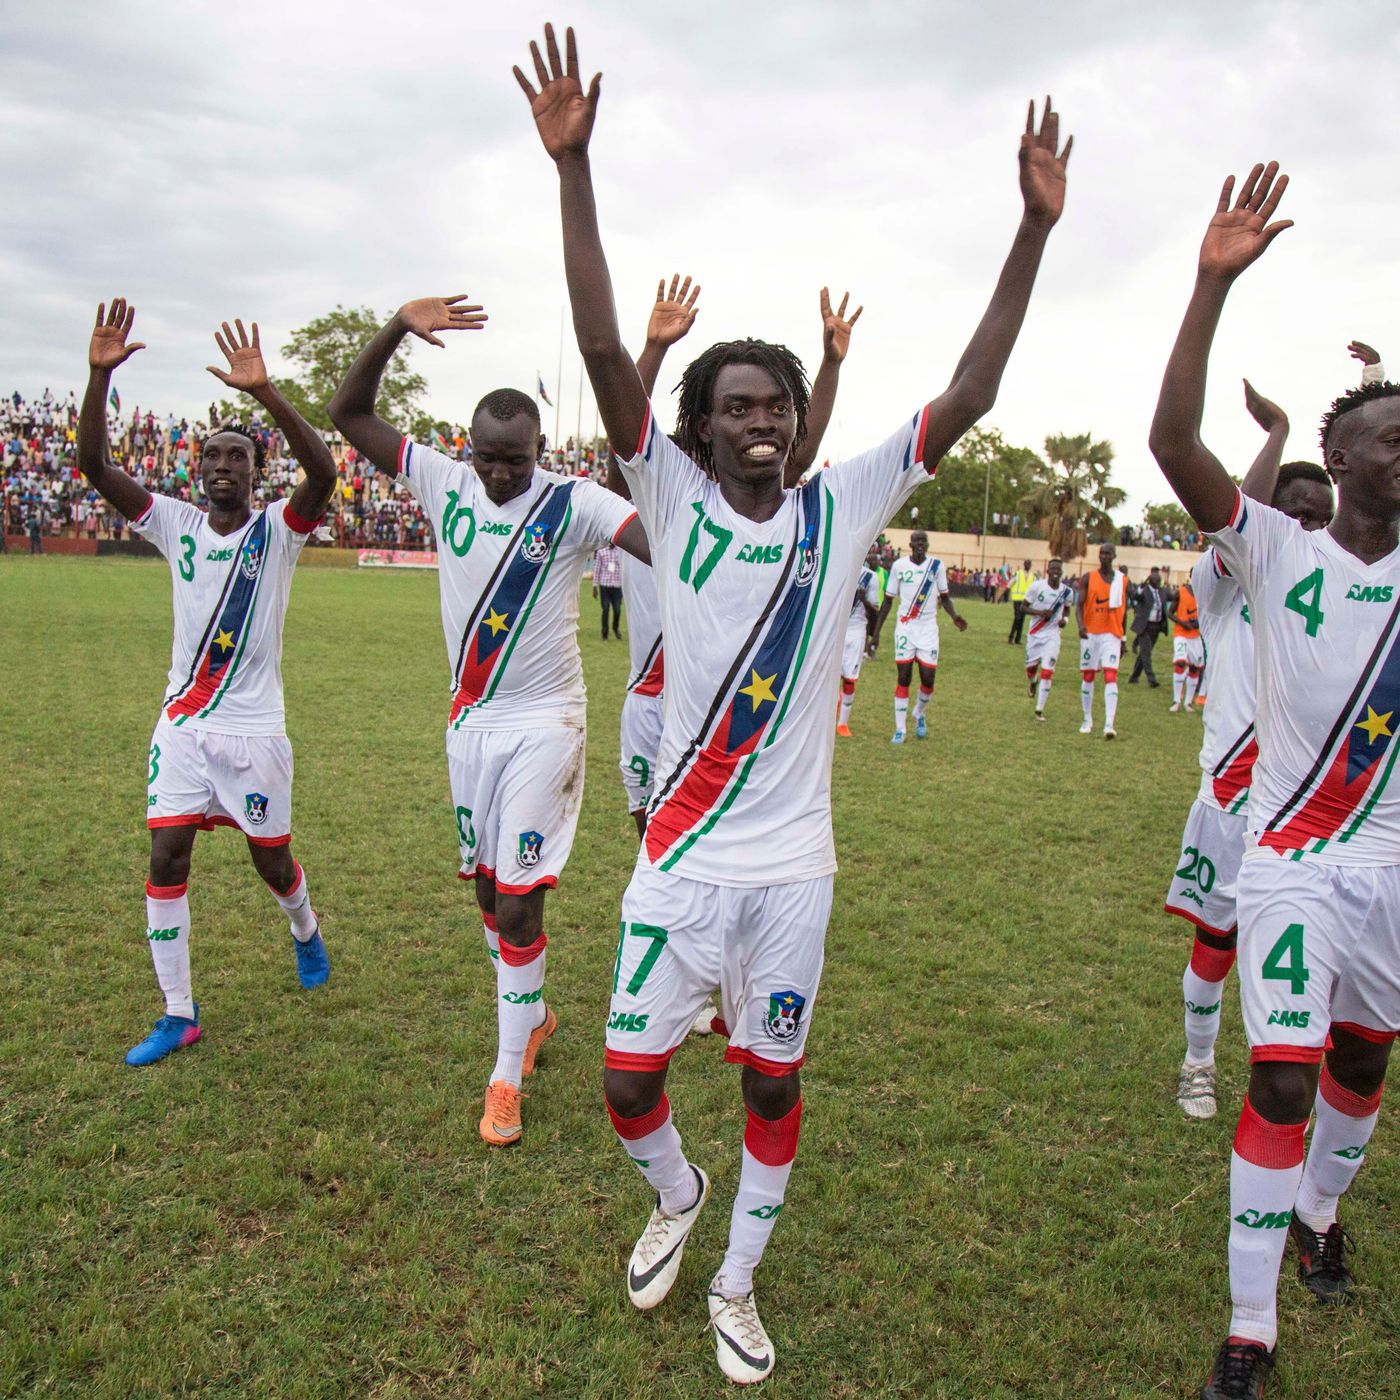 brand new 3bf8b fd69d South Sudan's Soccer Jerseys Are Made By This 23-Year-Old ...